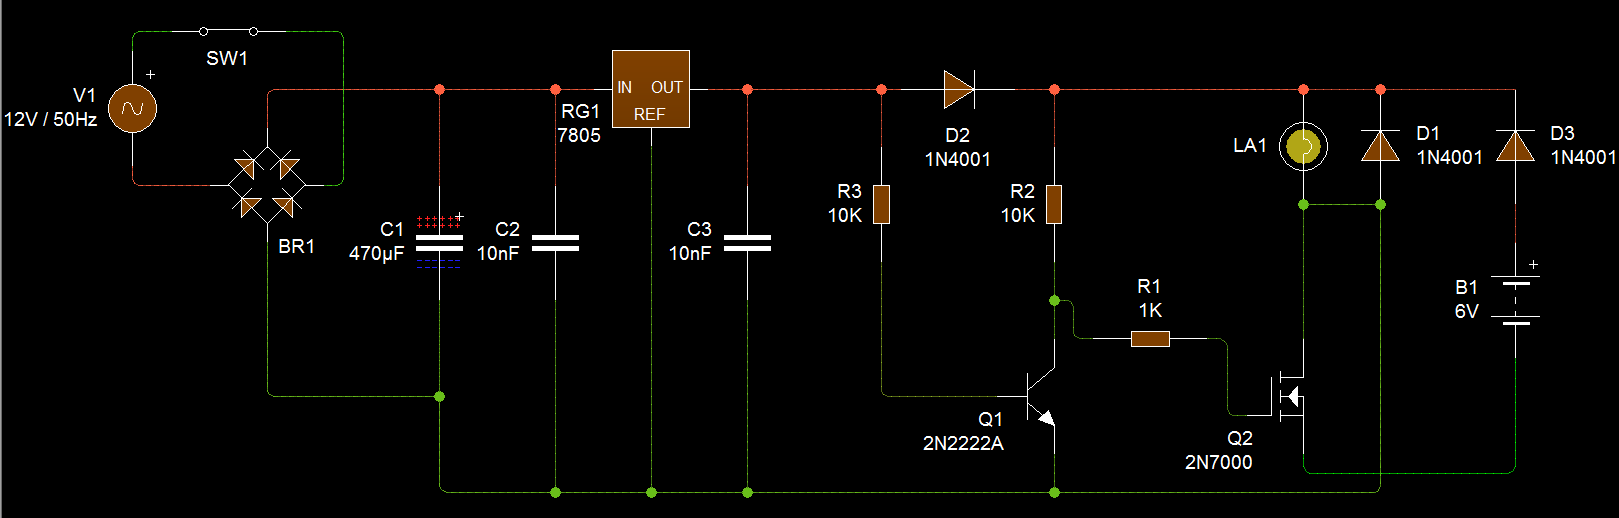 hight resolution of switchable dc battery circuit